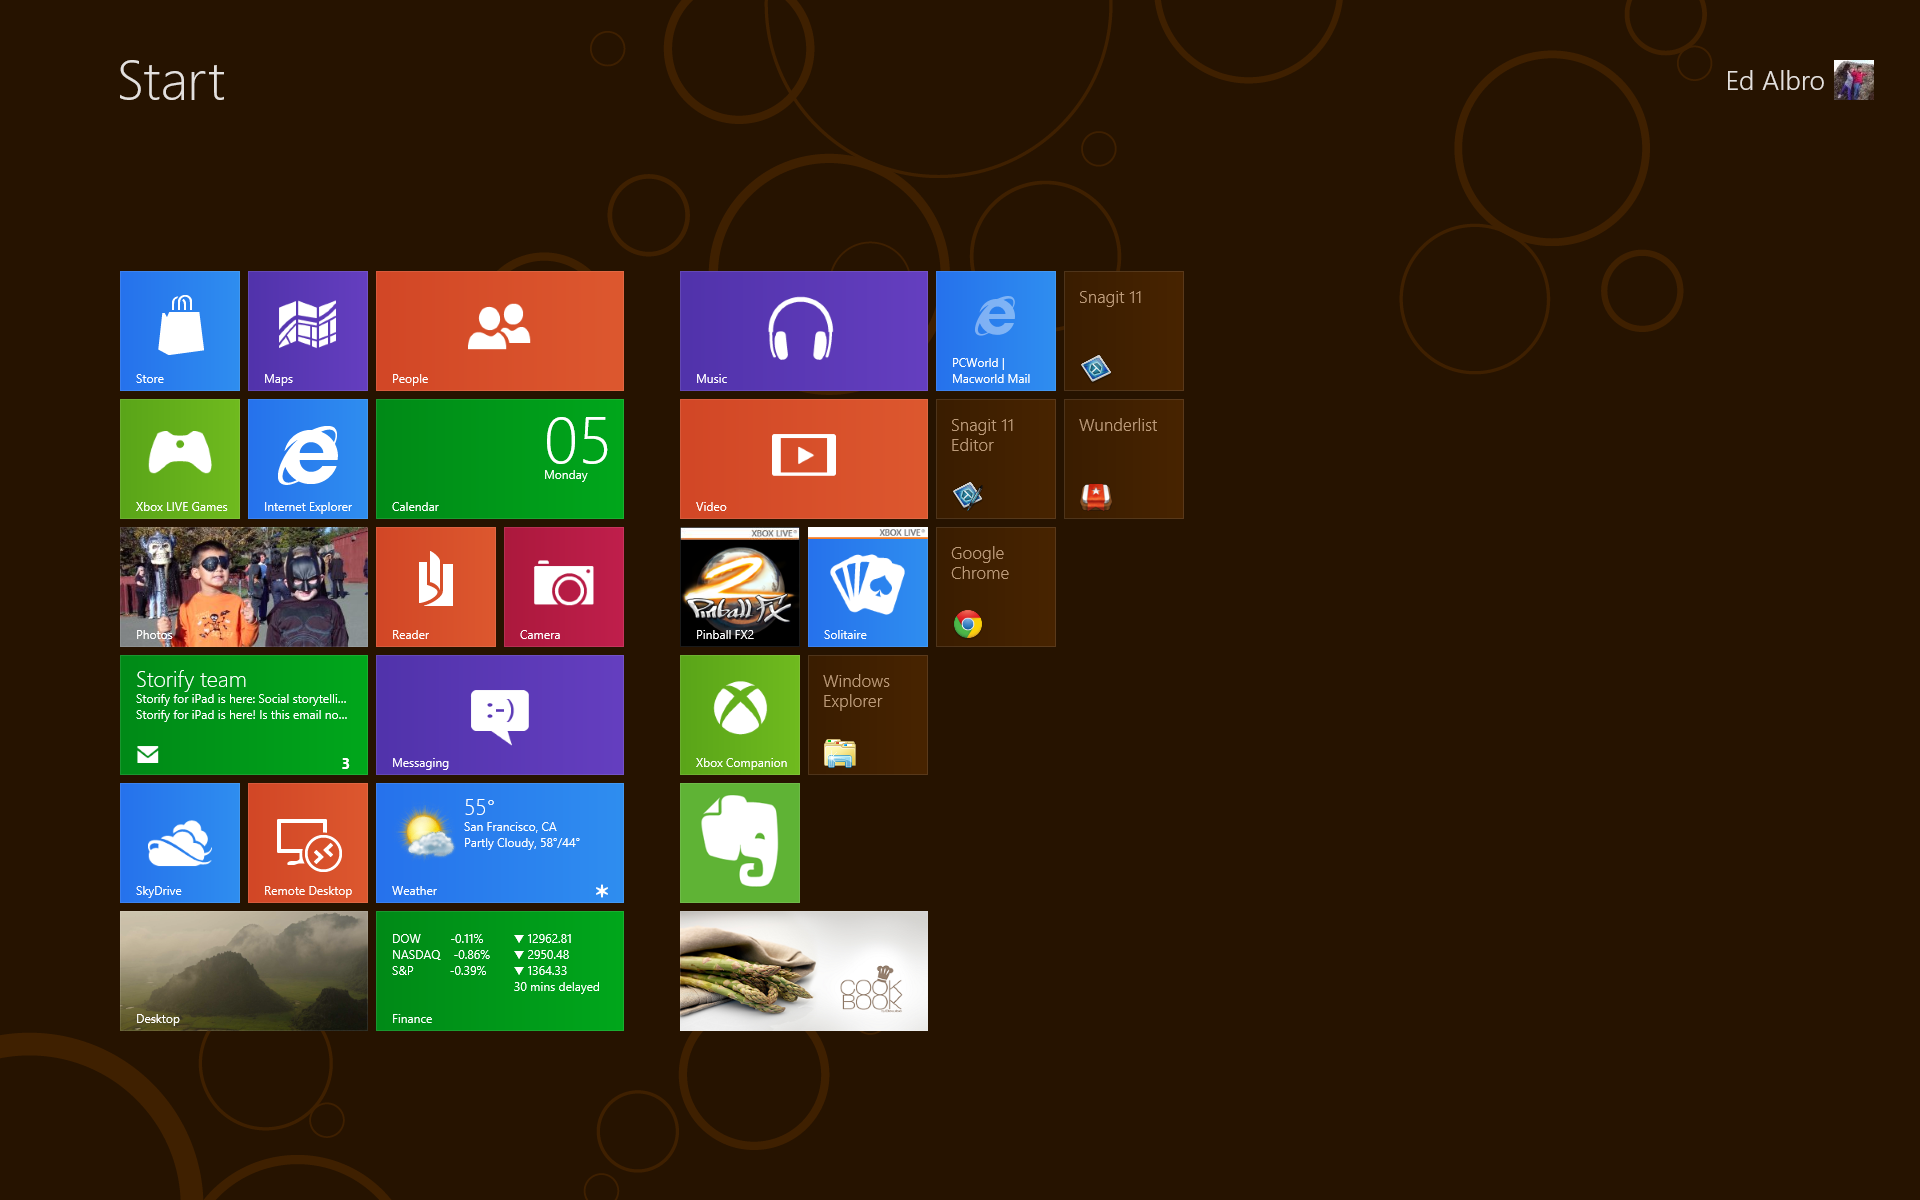 Windows 8 login | gizmocrazed future technology news.